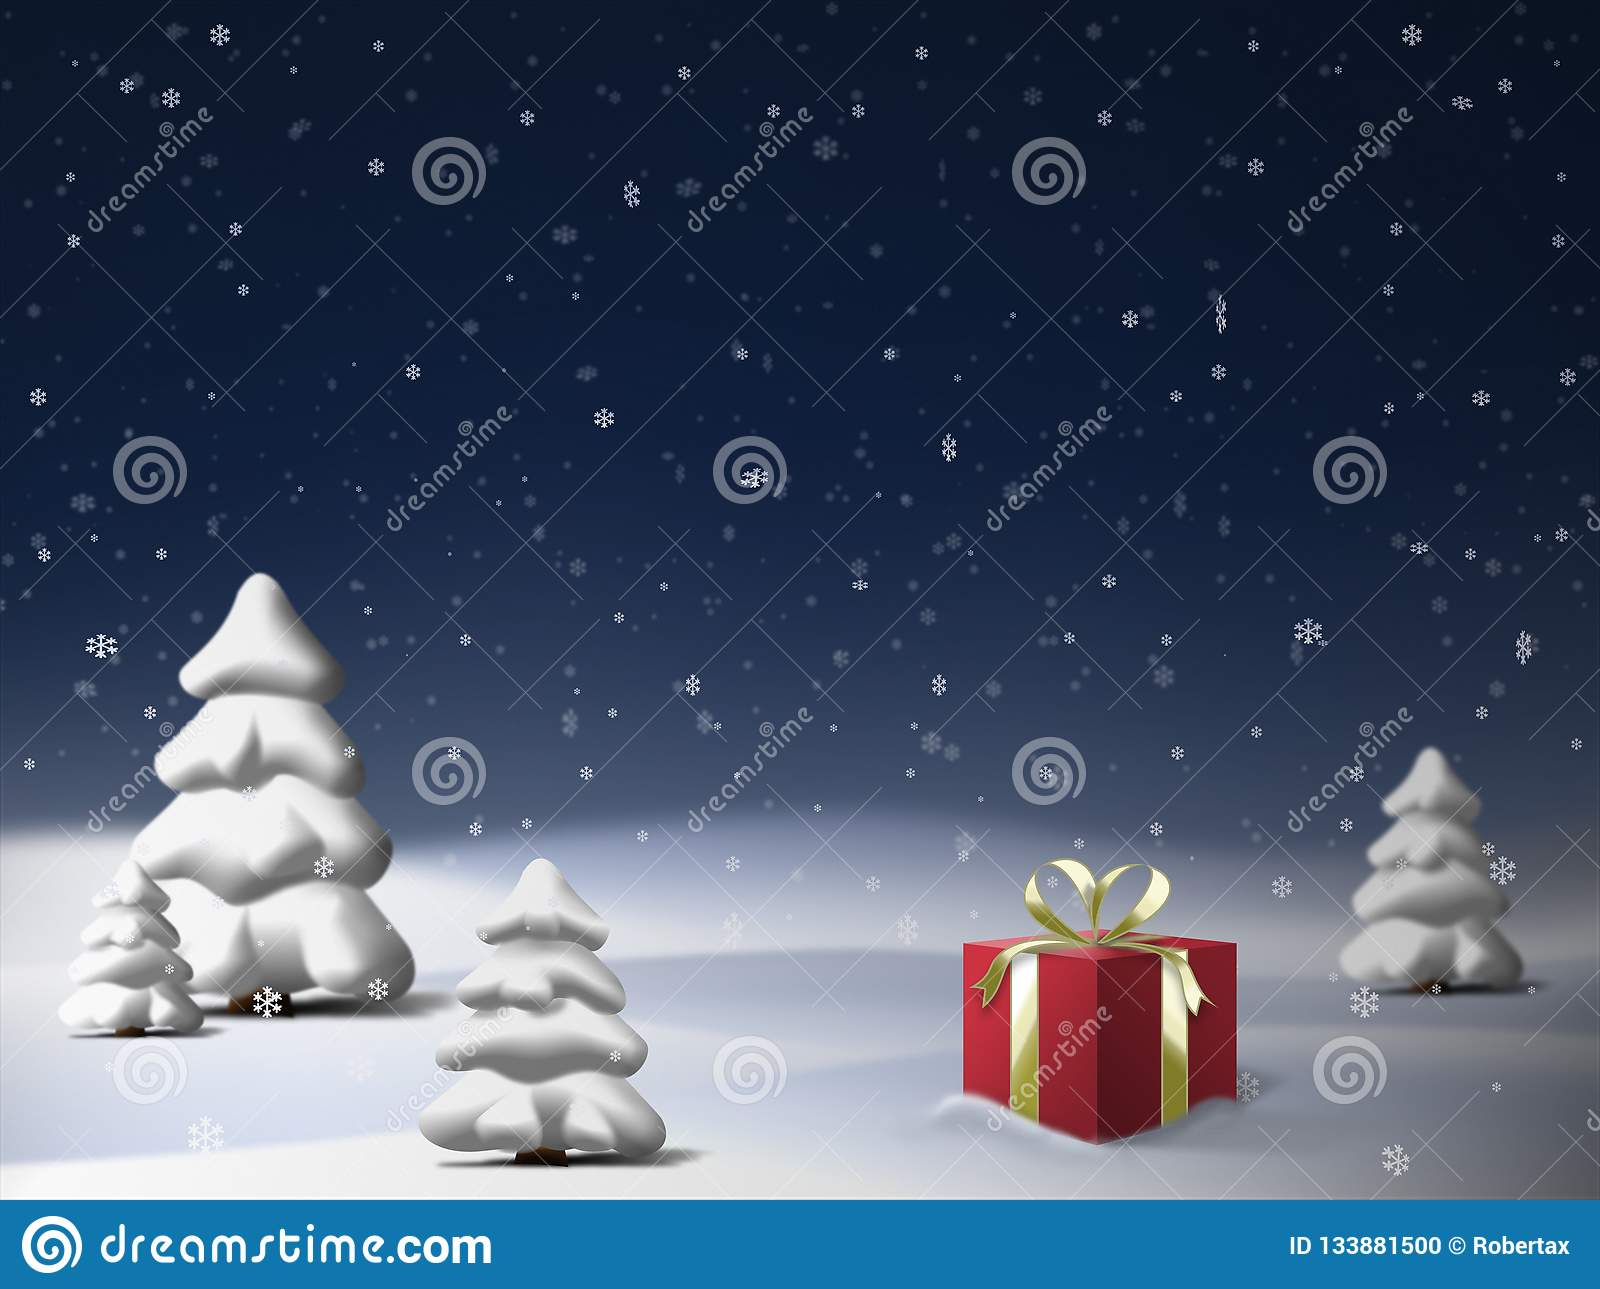 Beautiful Winter Night Scene With Spruce Trees Red Gift Box And Falling Snow Stock Illustration Illustration Of Christmas Scenery 133881500